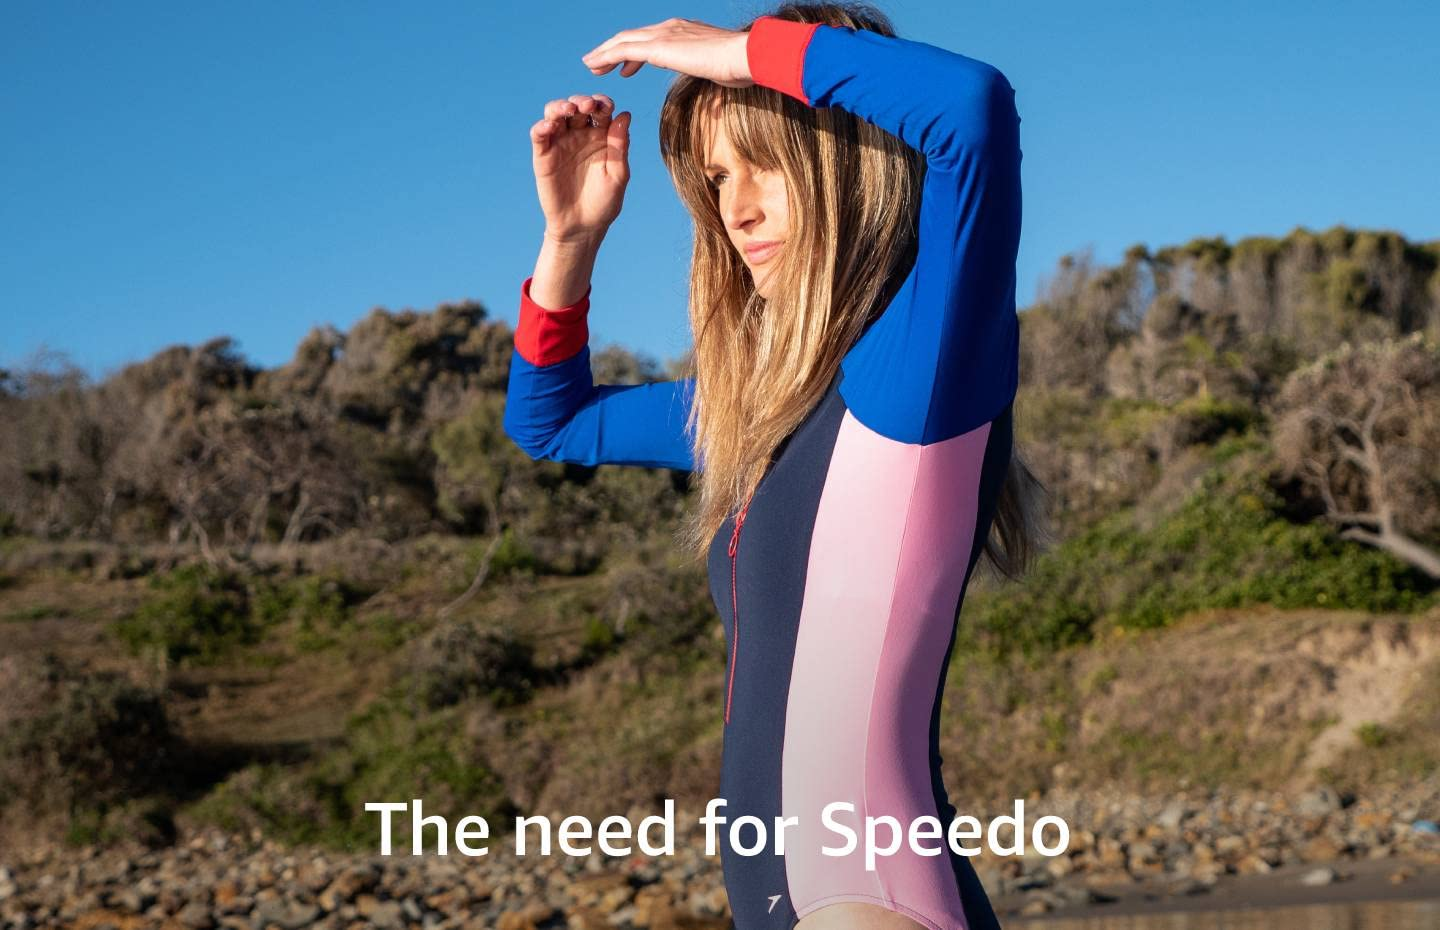 Shop Speedo